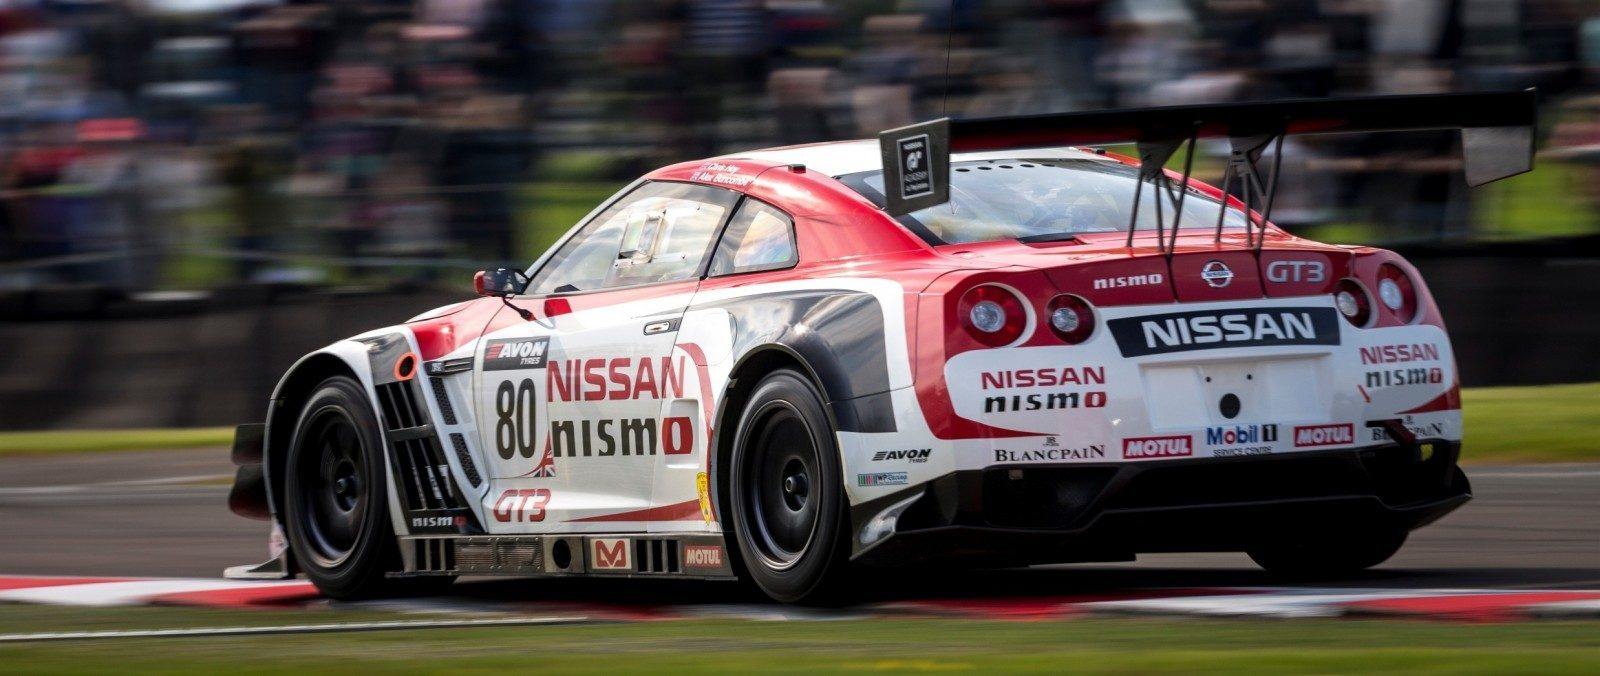 Nissan GT-R GT3 COnfirmed for 2014 Nurbugring 24H Race in June 6